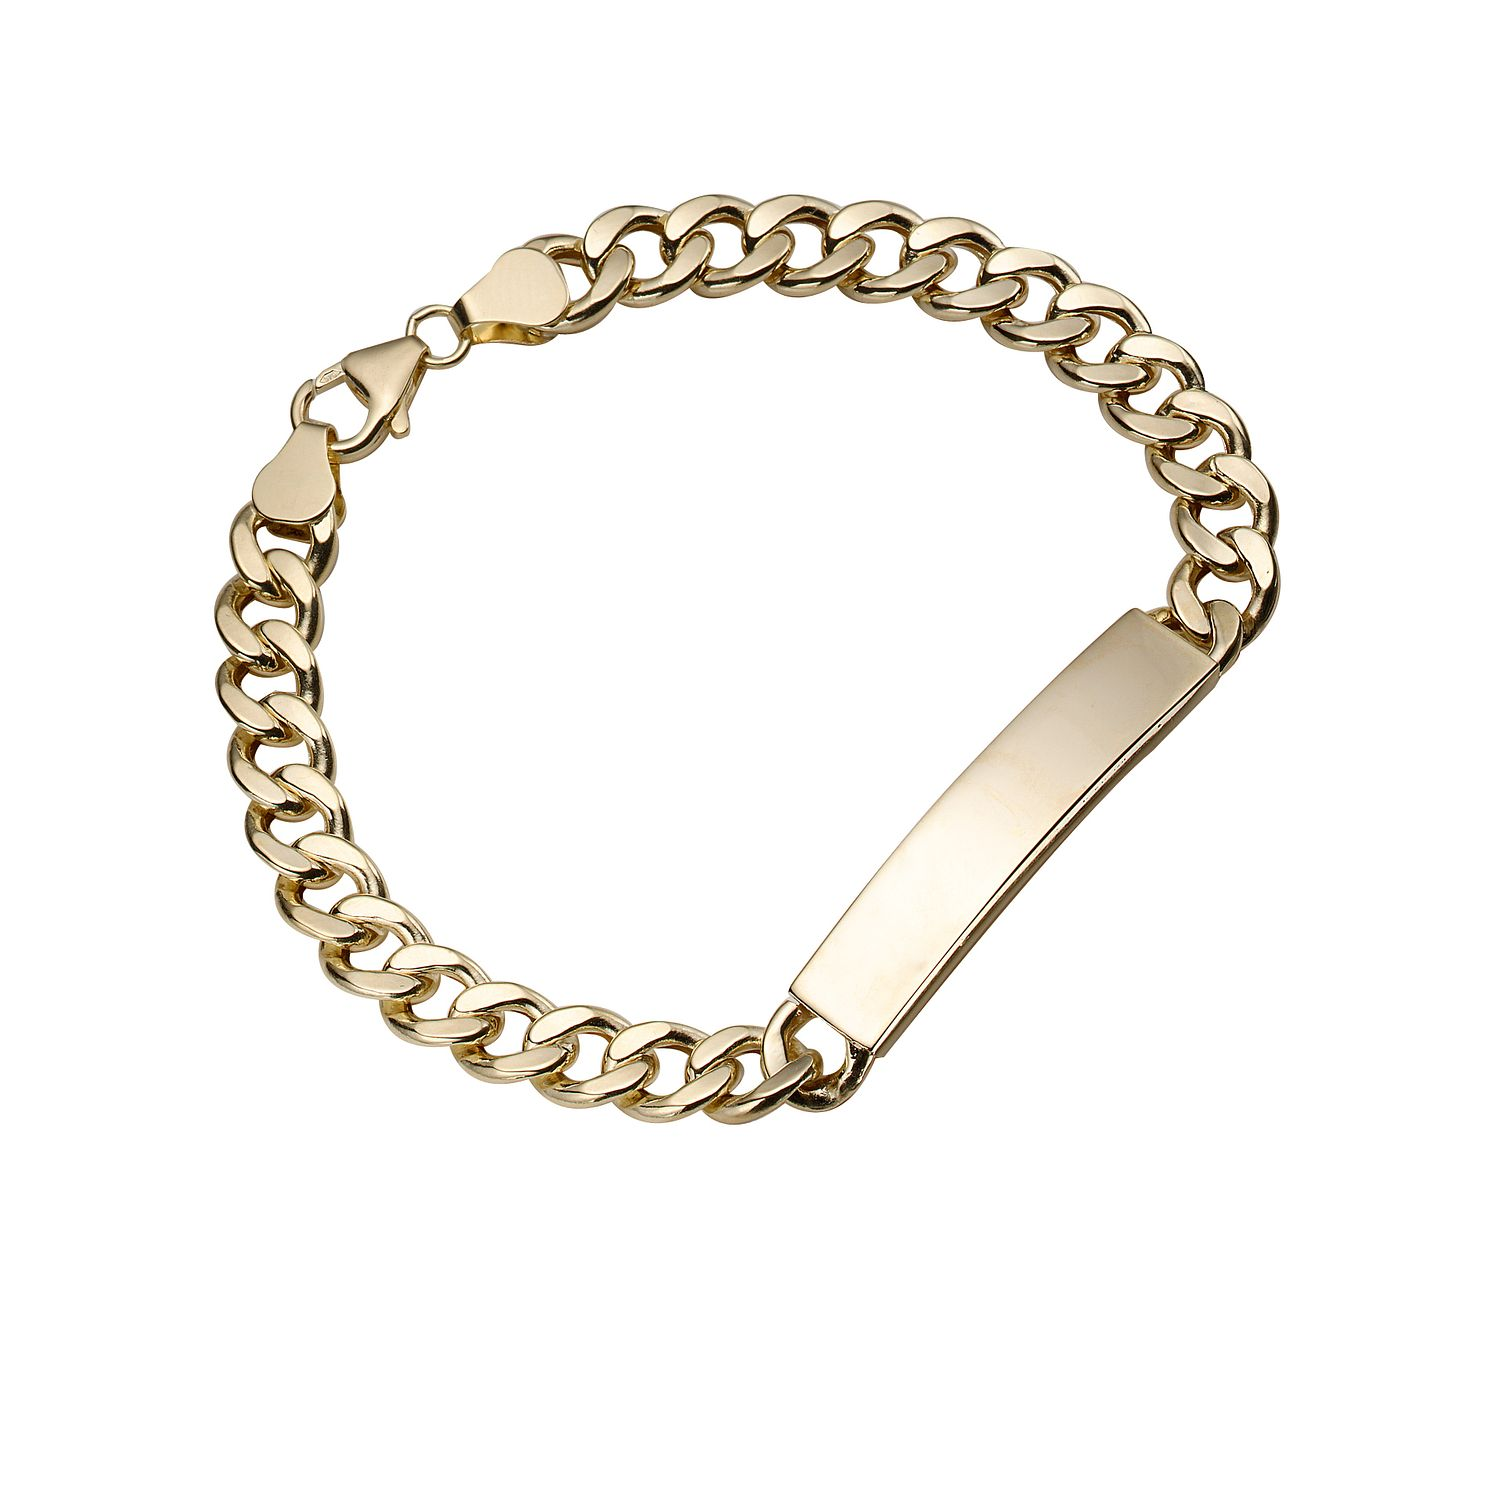 9ct Yellow Gold 8.25 Inch Curb Chain ID Bracelet - Product number 4305159